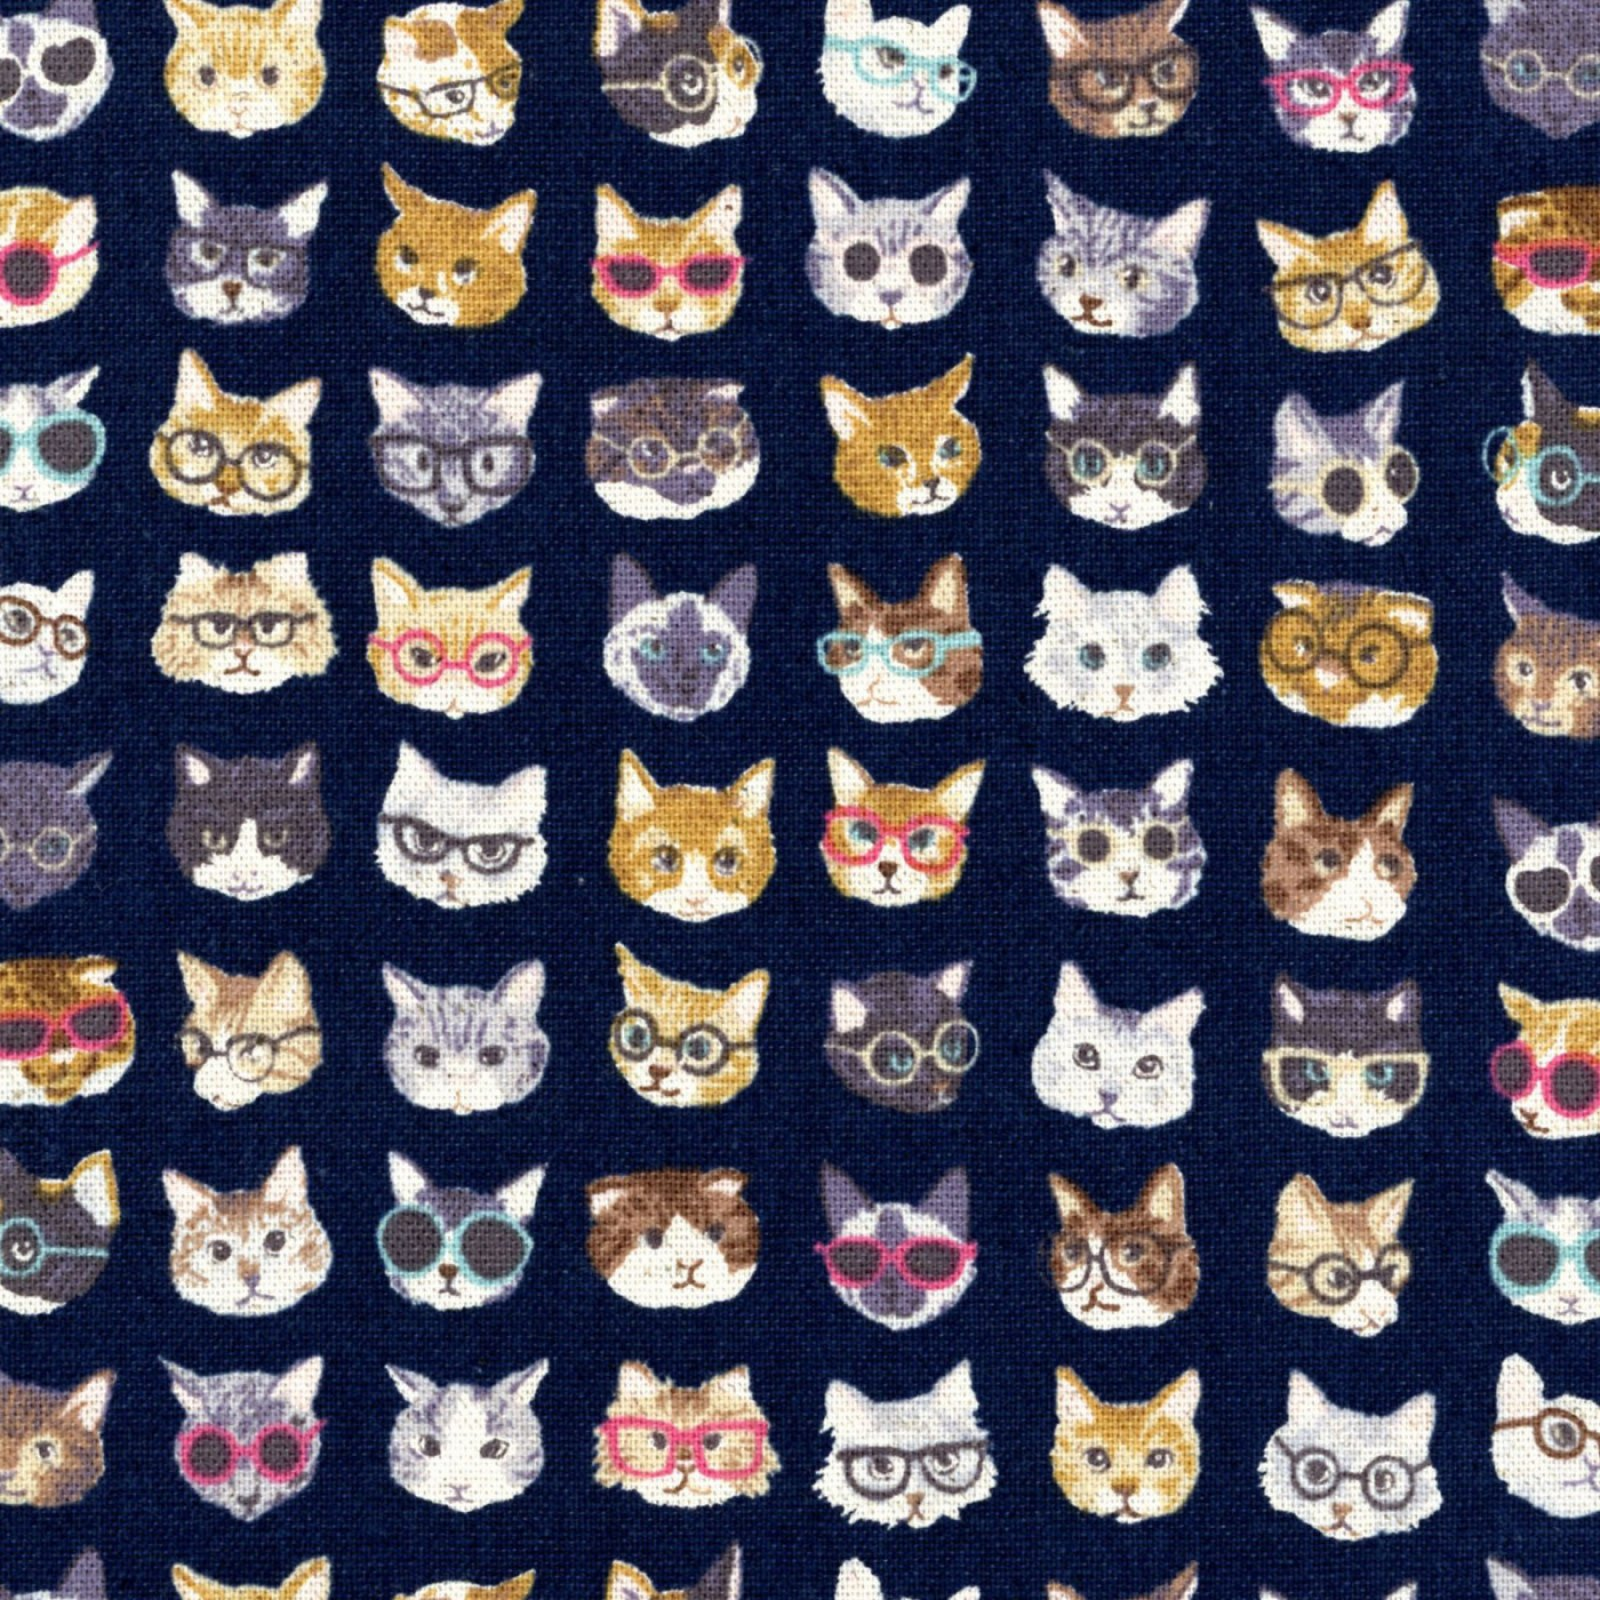 Kokka - Cotton/Linen Canvas - Animal World - Cats Blue